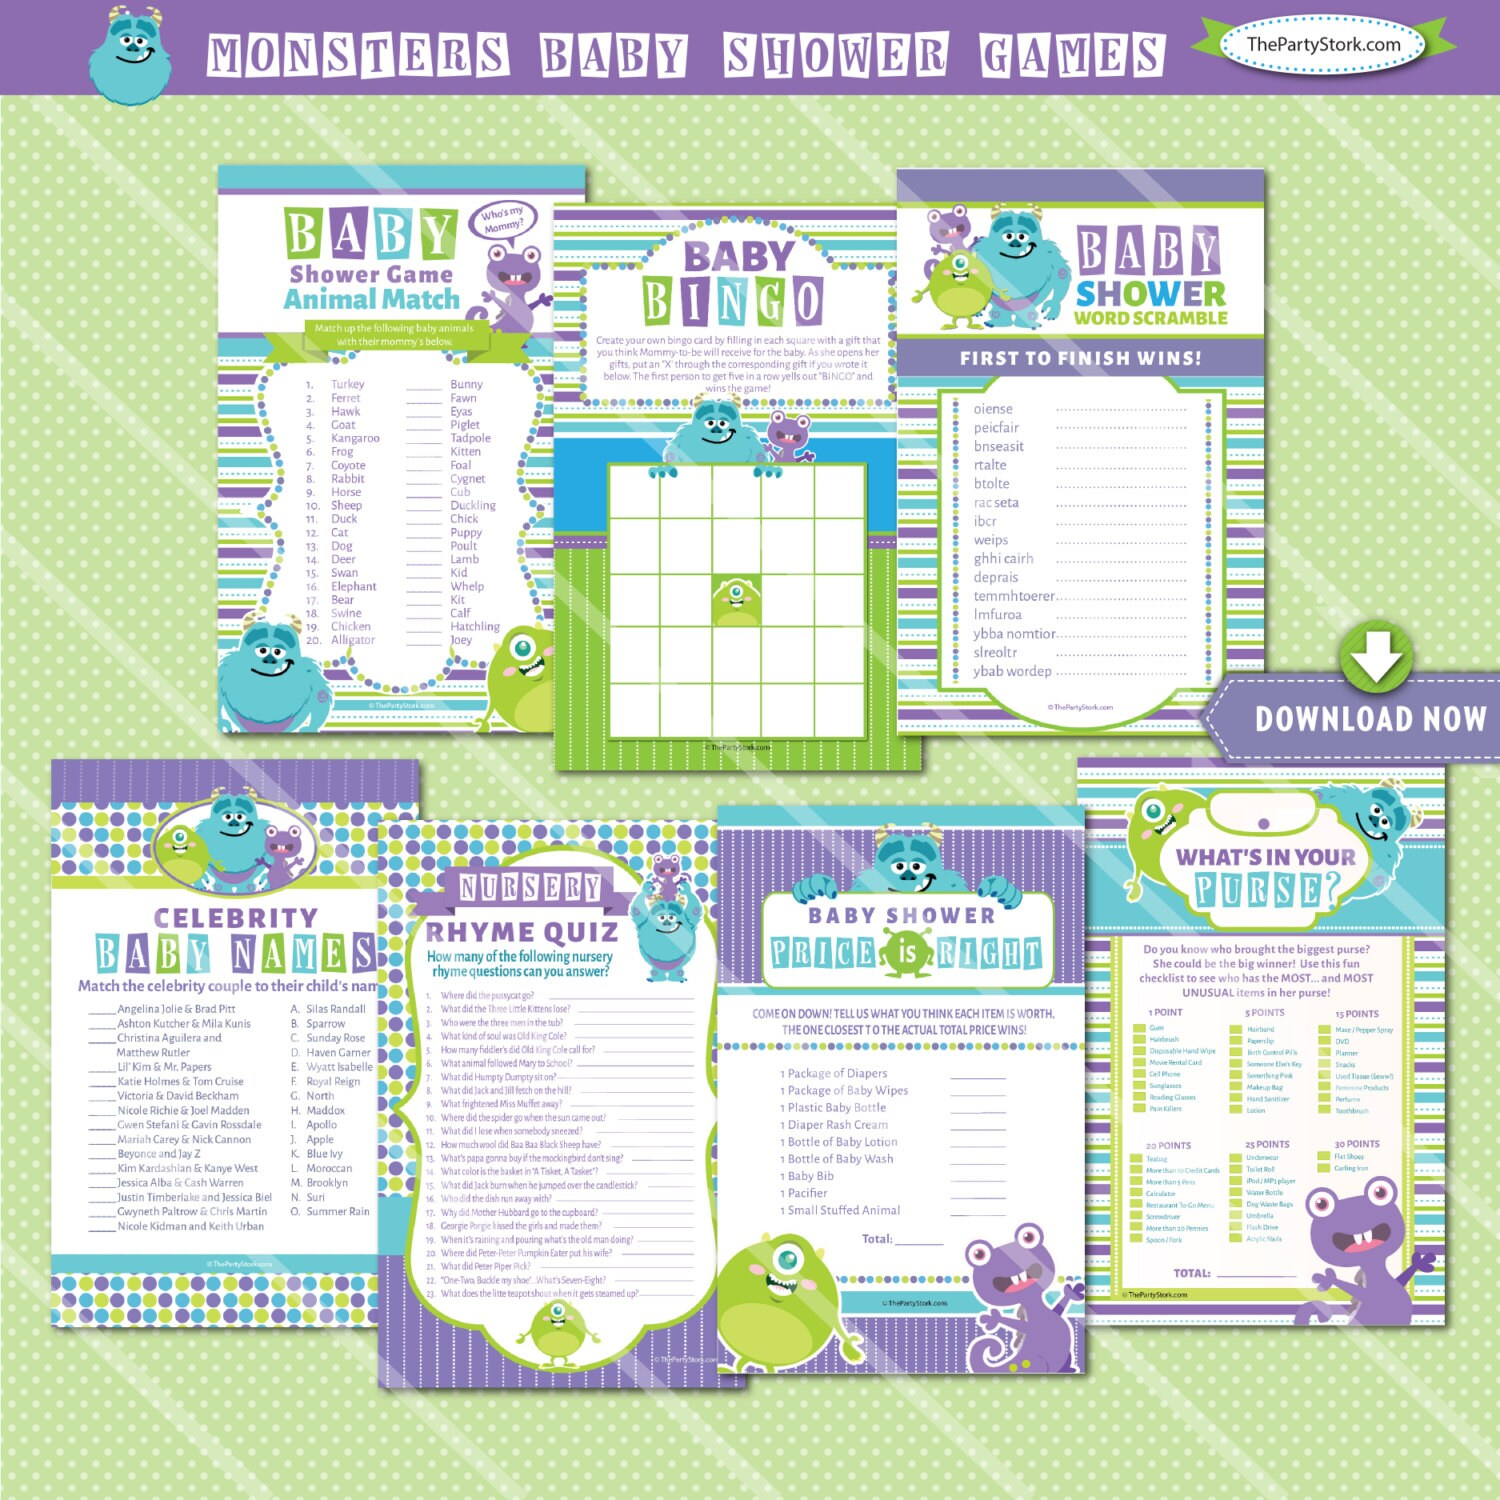 Monsters Inc Baby Shower Games Printables Monster Baby Shower